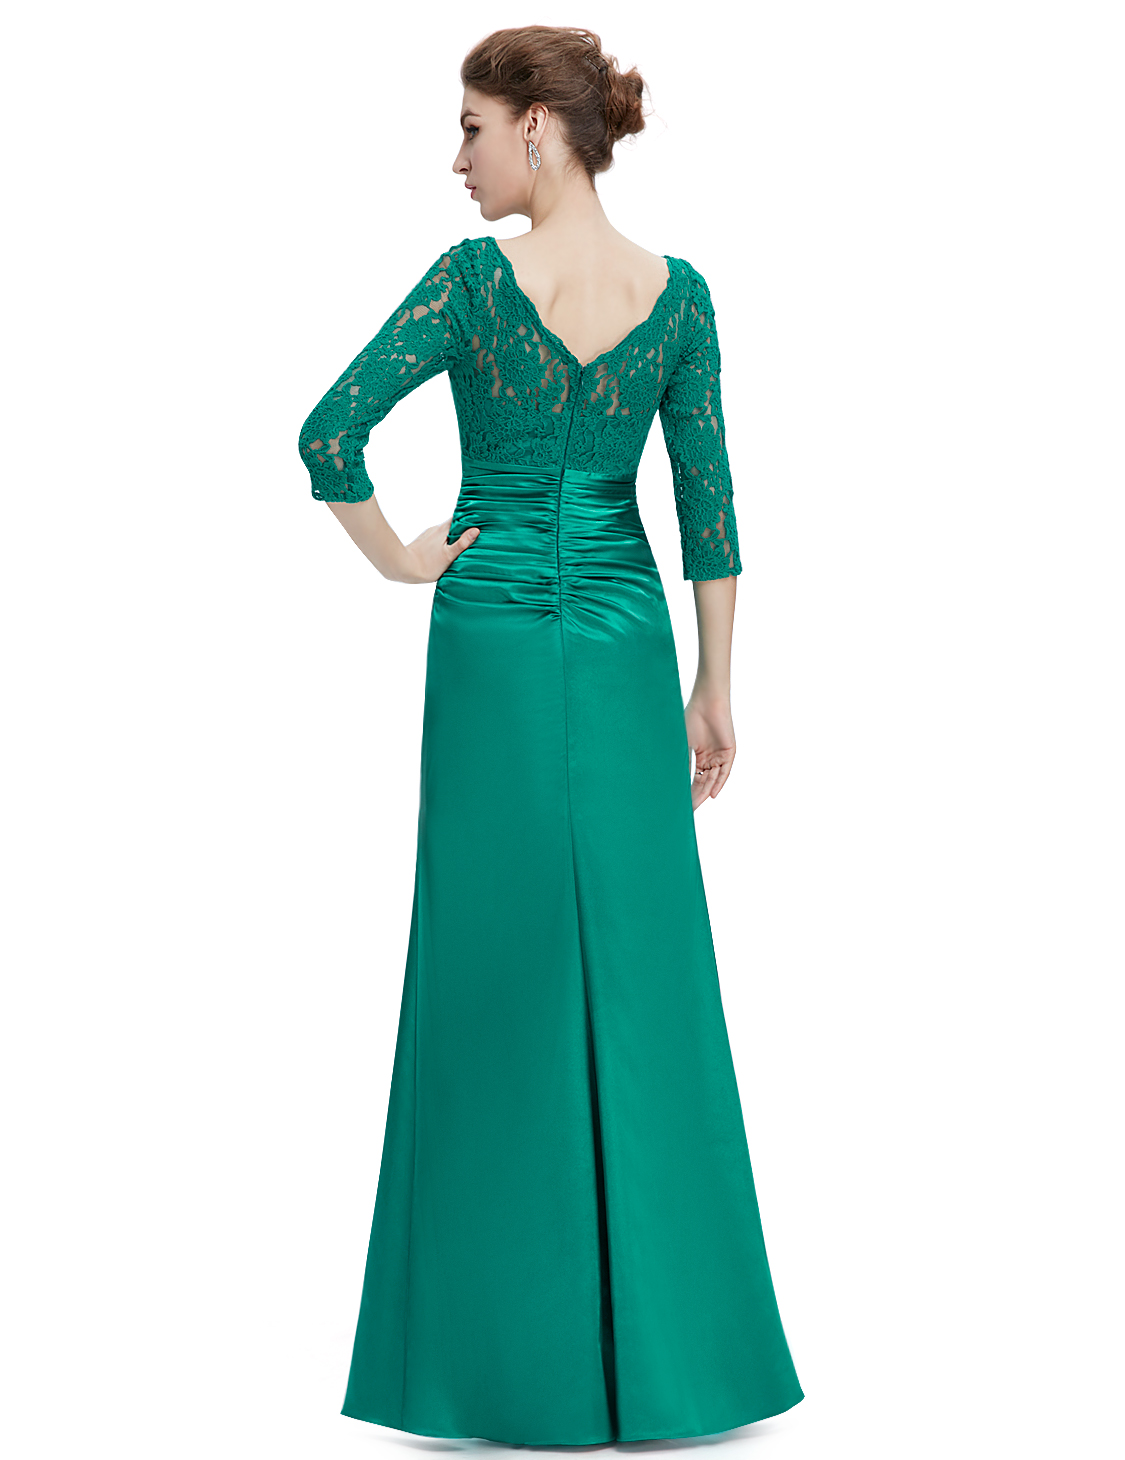 Evening Dresses Ebay Canada - Long Dresses Online